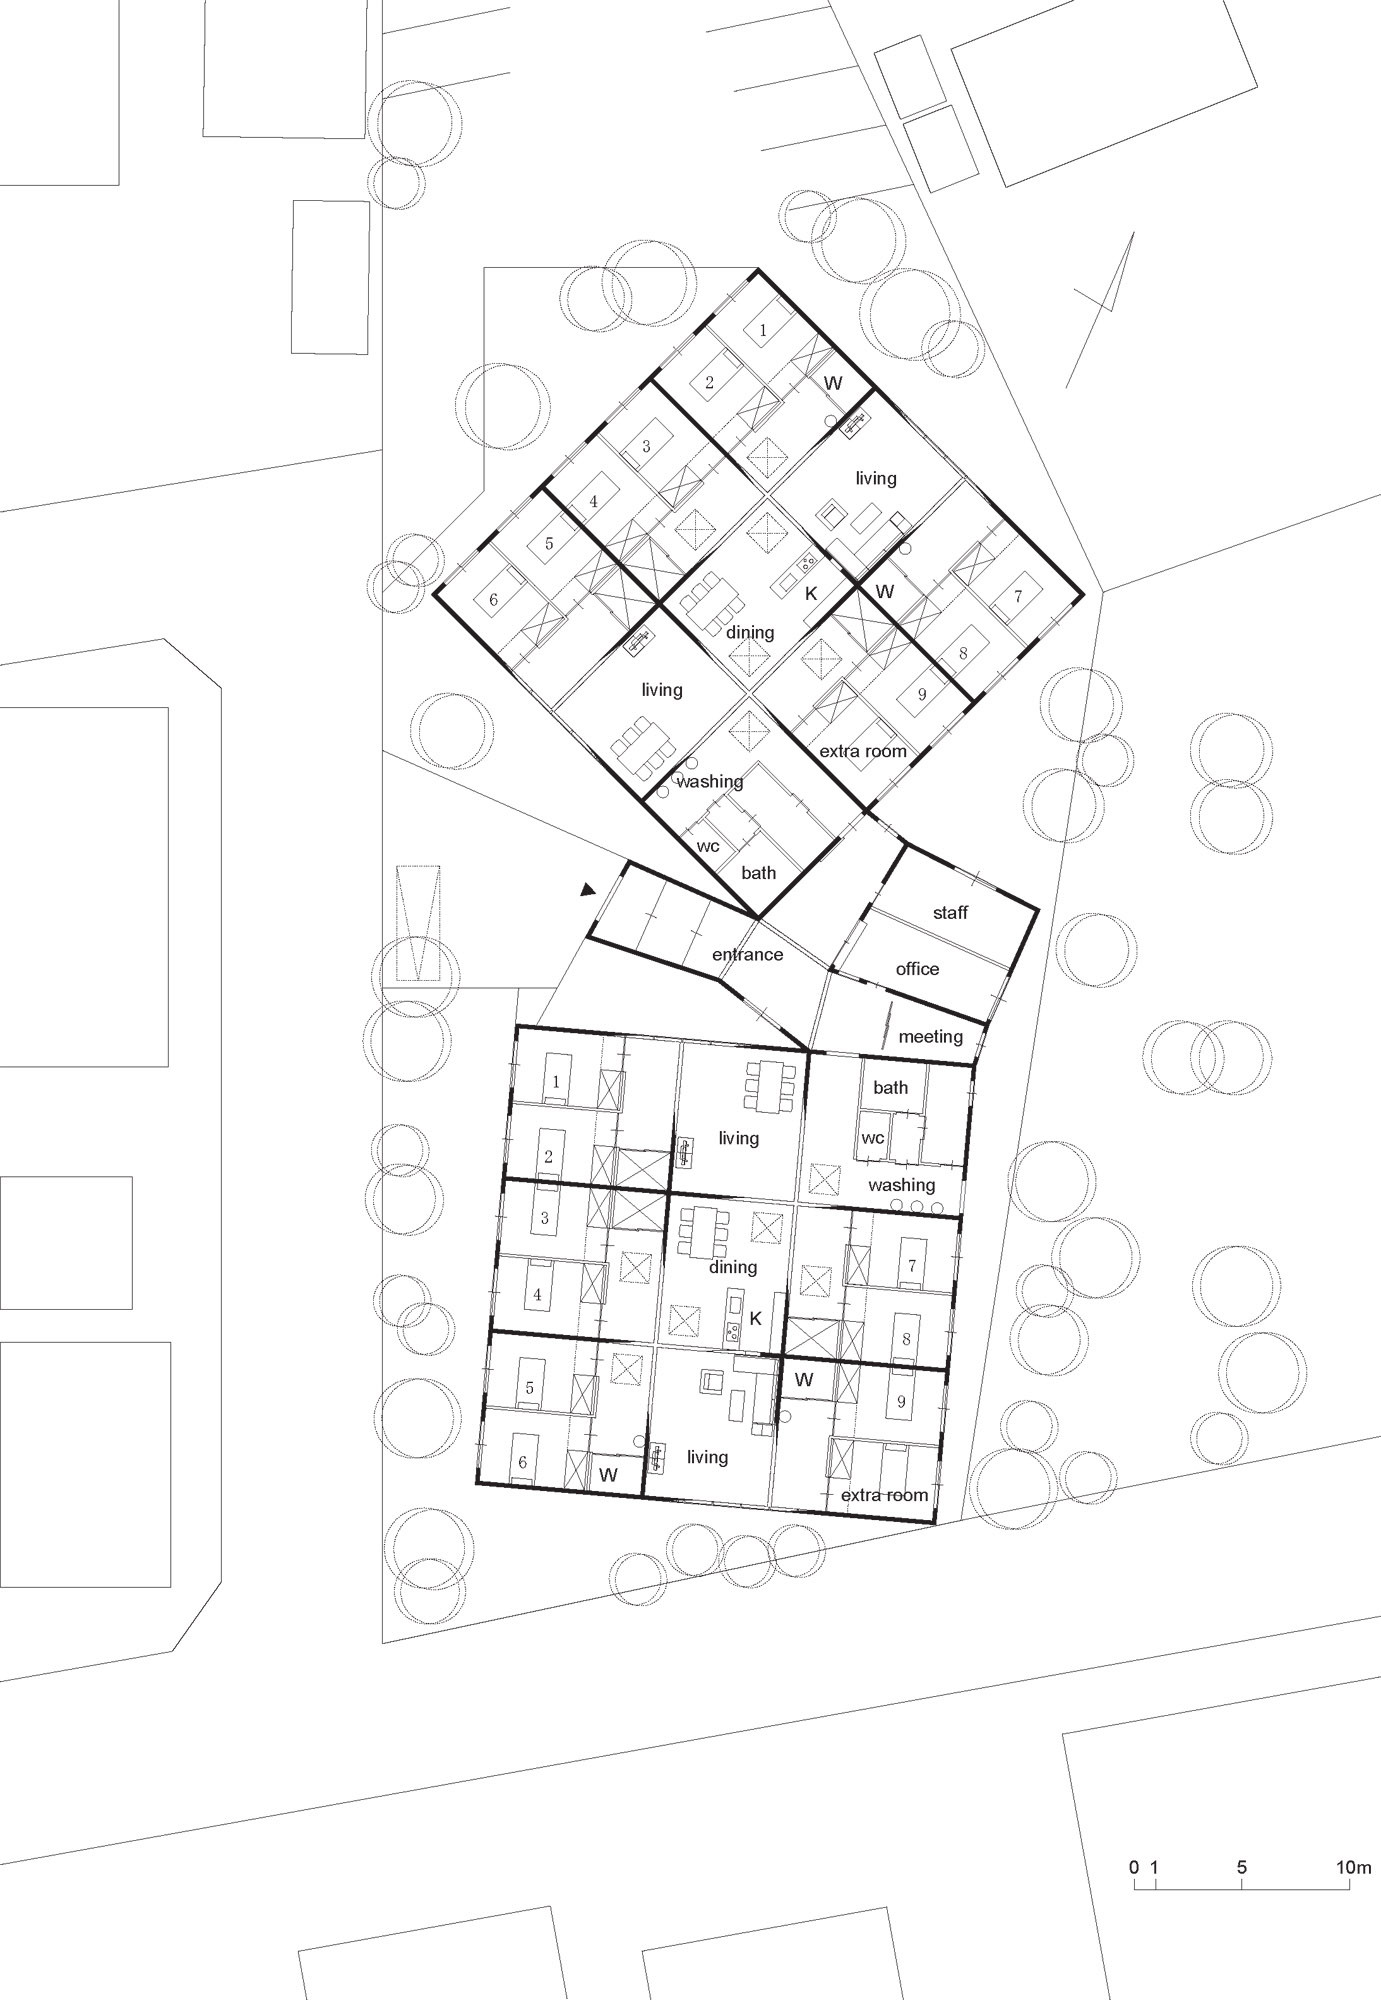 Nursing Home Layout Design 画廊 登别集合住宅 Sou Fujimoto 3